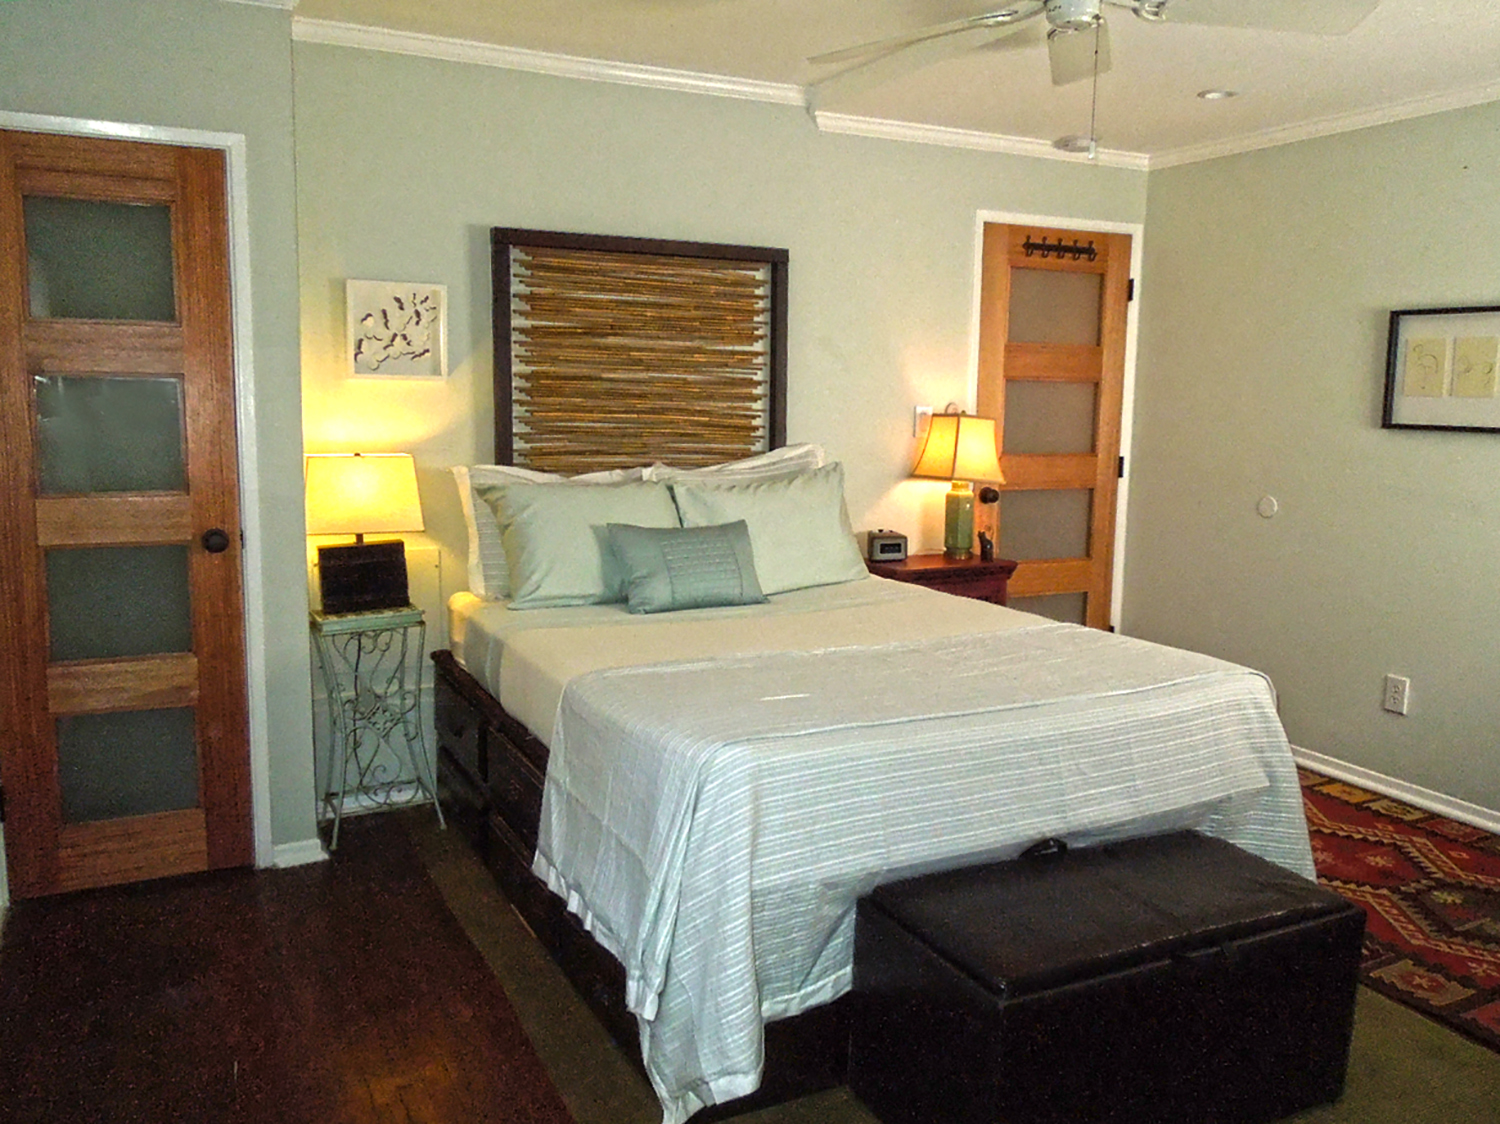 THE CARRIAGE HOUSE - $200 per night